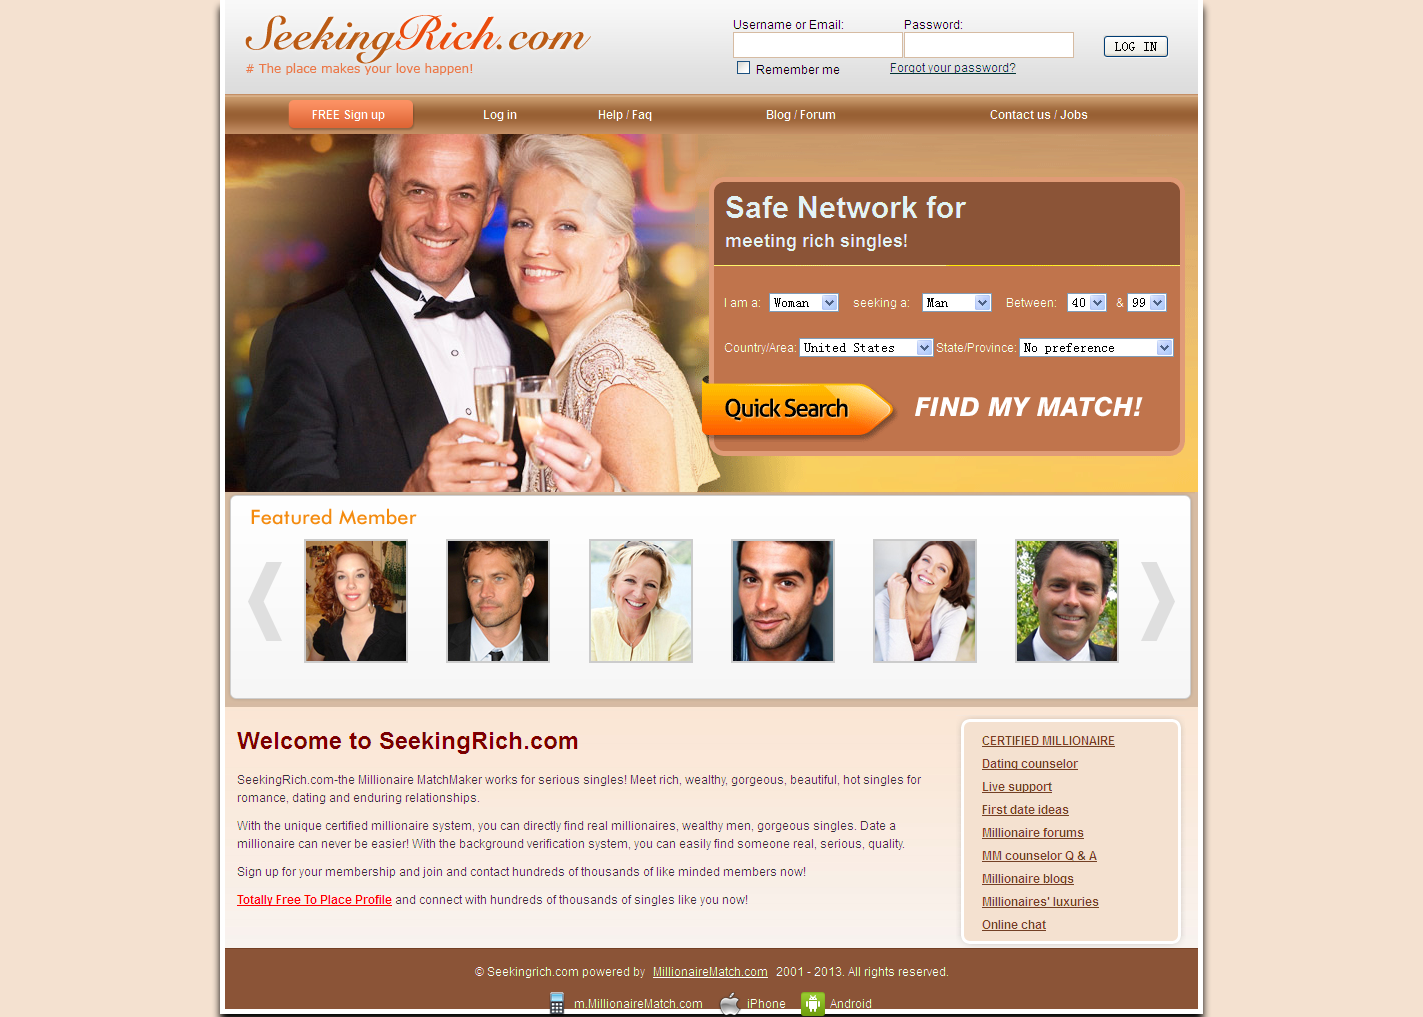 susanville singles dating site Susanville ca's best 100% free singles dating site meet thousands of singles in susanville ca with mingle2's free personal ads and chat rooms our network of single men and women in susanville ca is the perfect place to make friends or find a boyfriend or girlfriend in susanville ca.